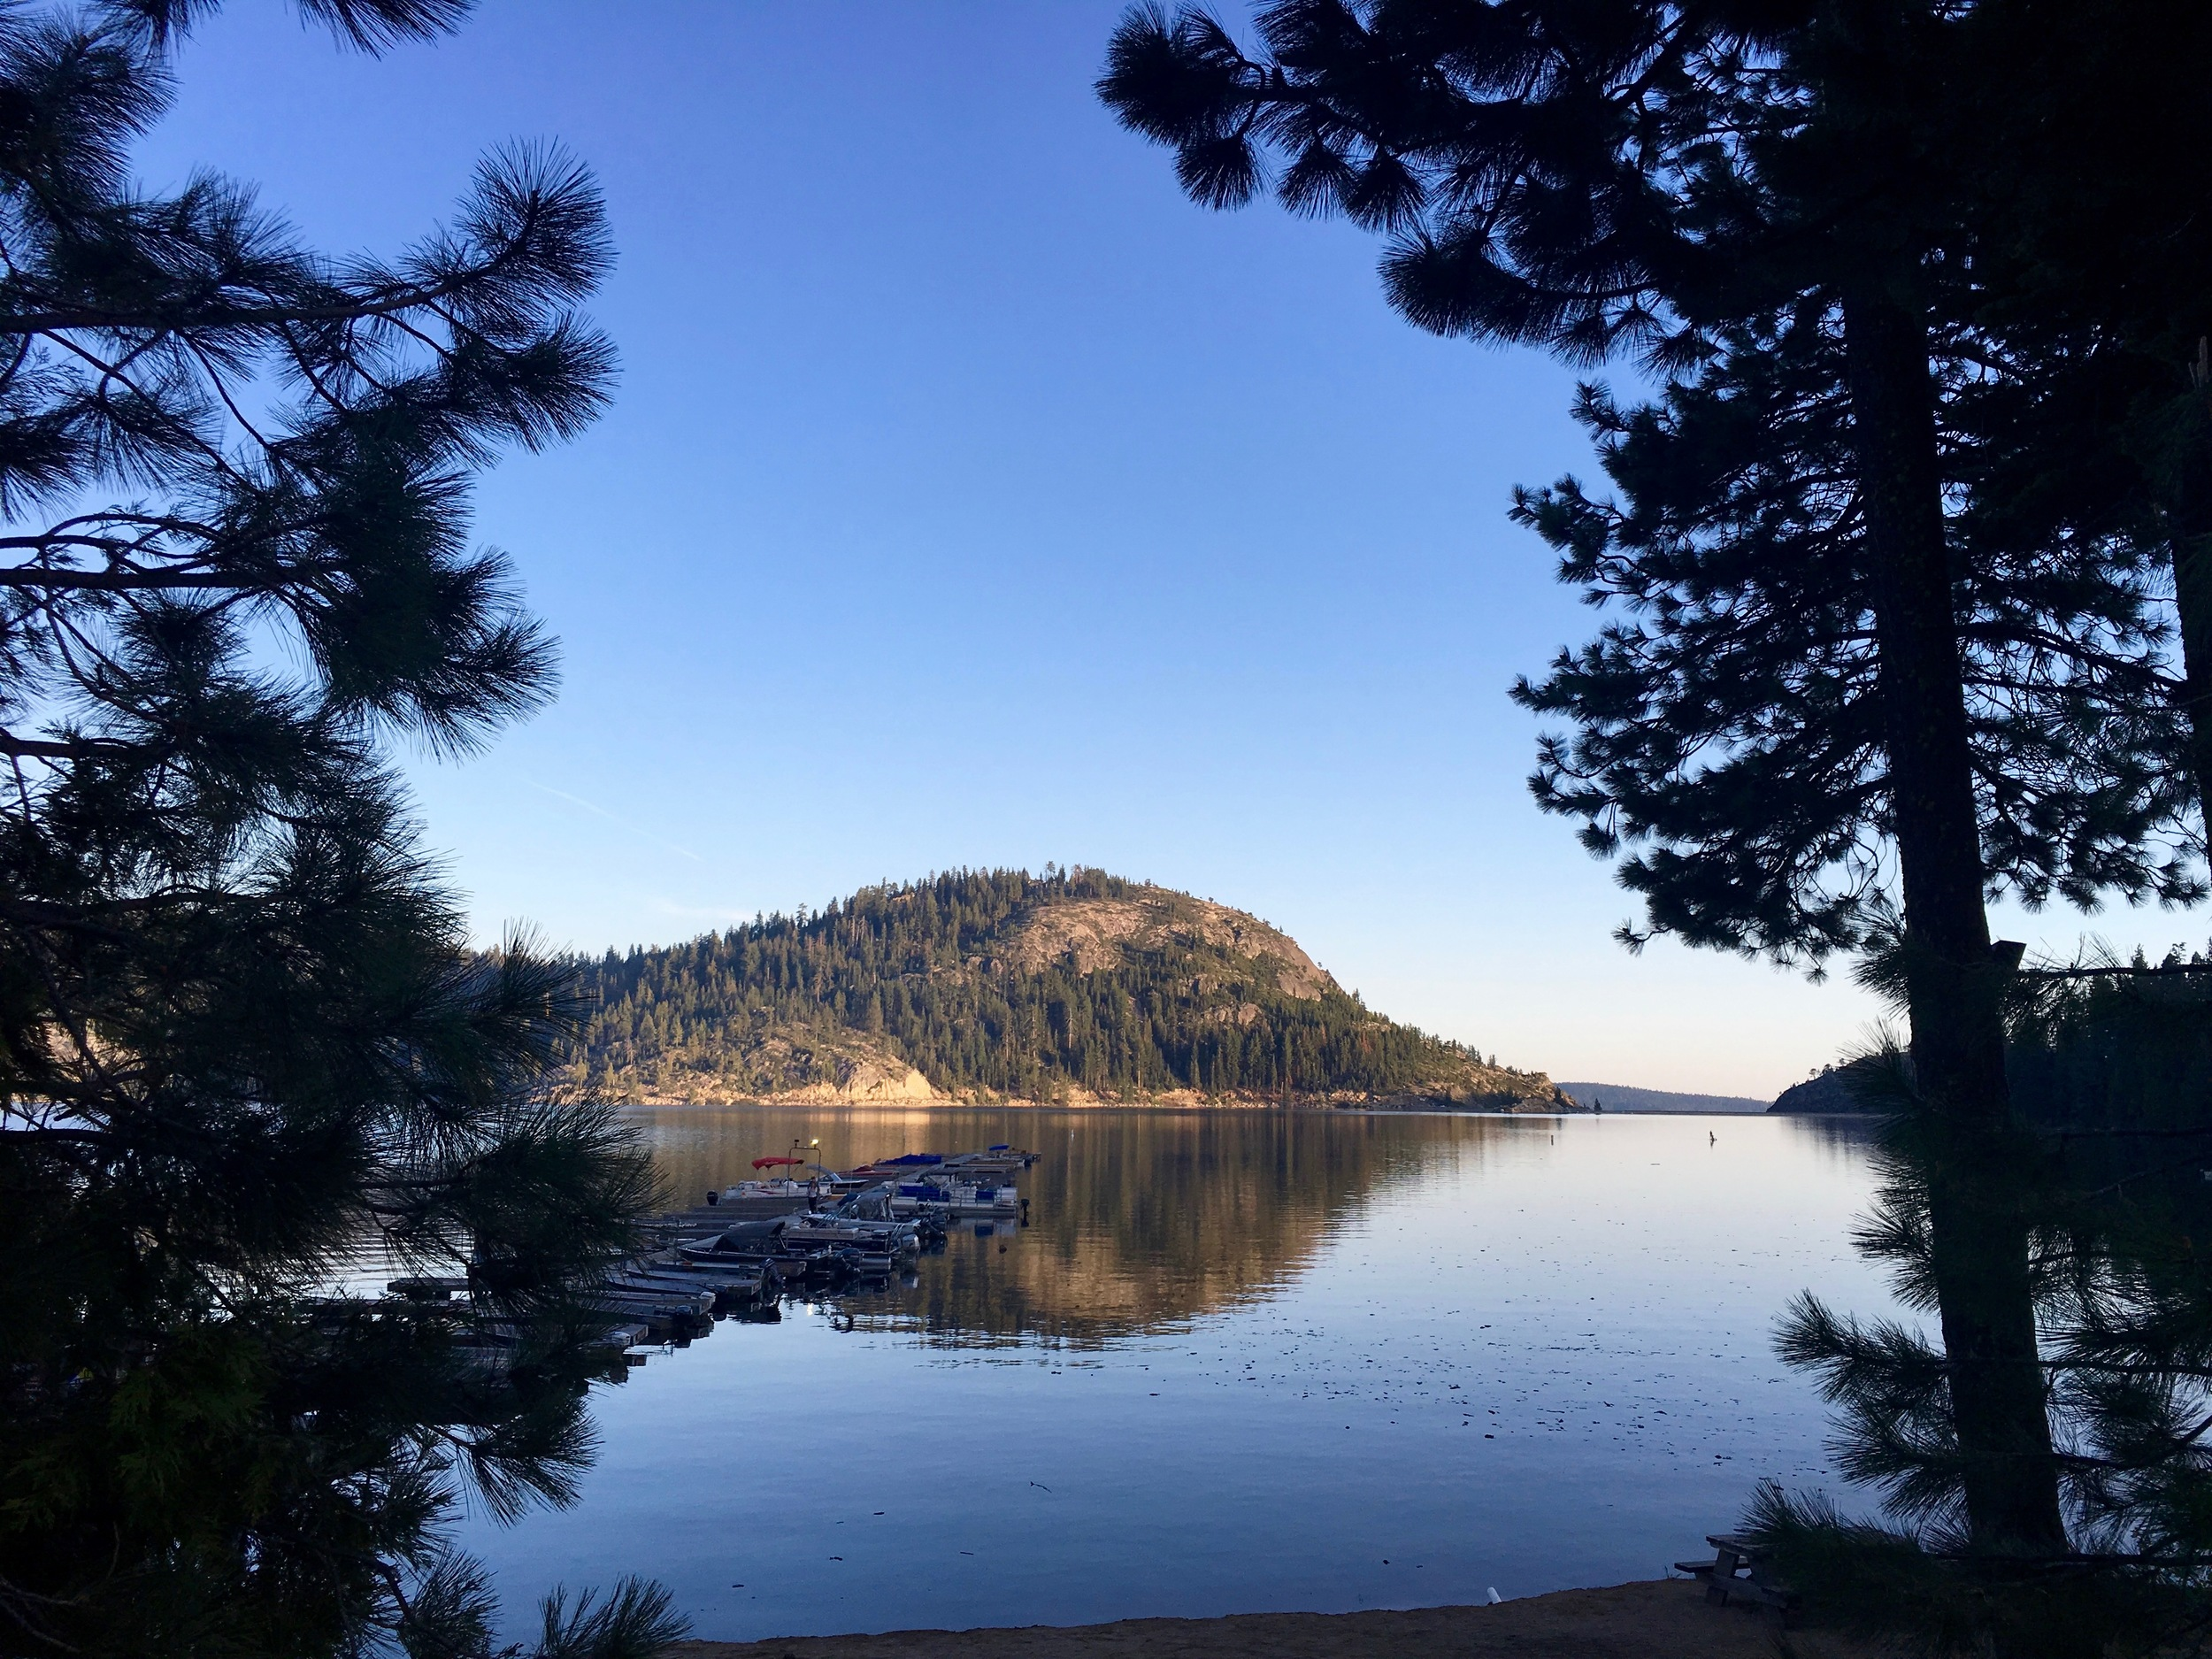 """The view from my campsite on Bear Lake off Route 88 in the Sierra, which goes over Carson Pass, the same pass used by the original Mormons. It was once known as """"Emigrant Trail""""."""